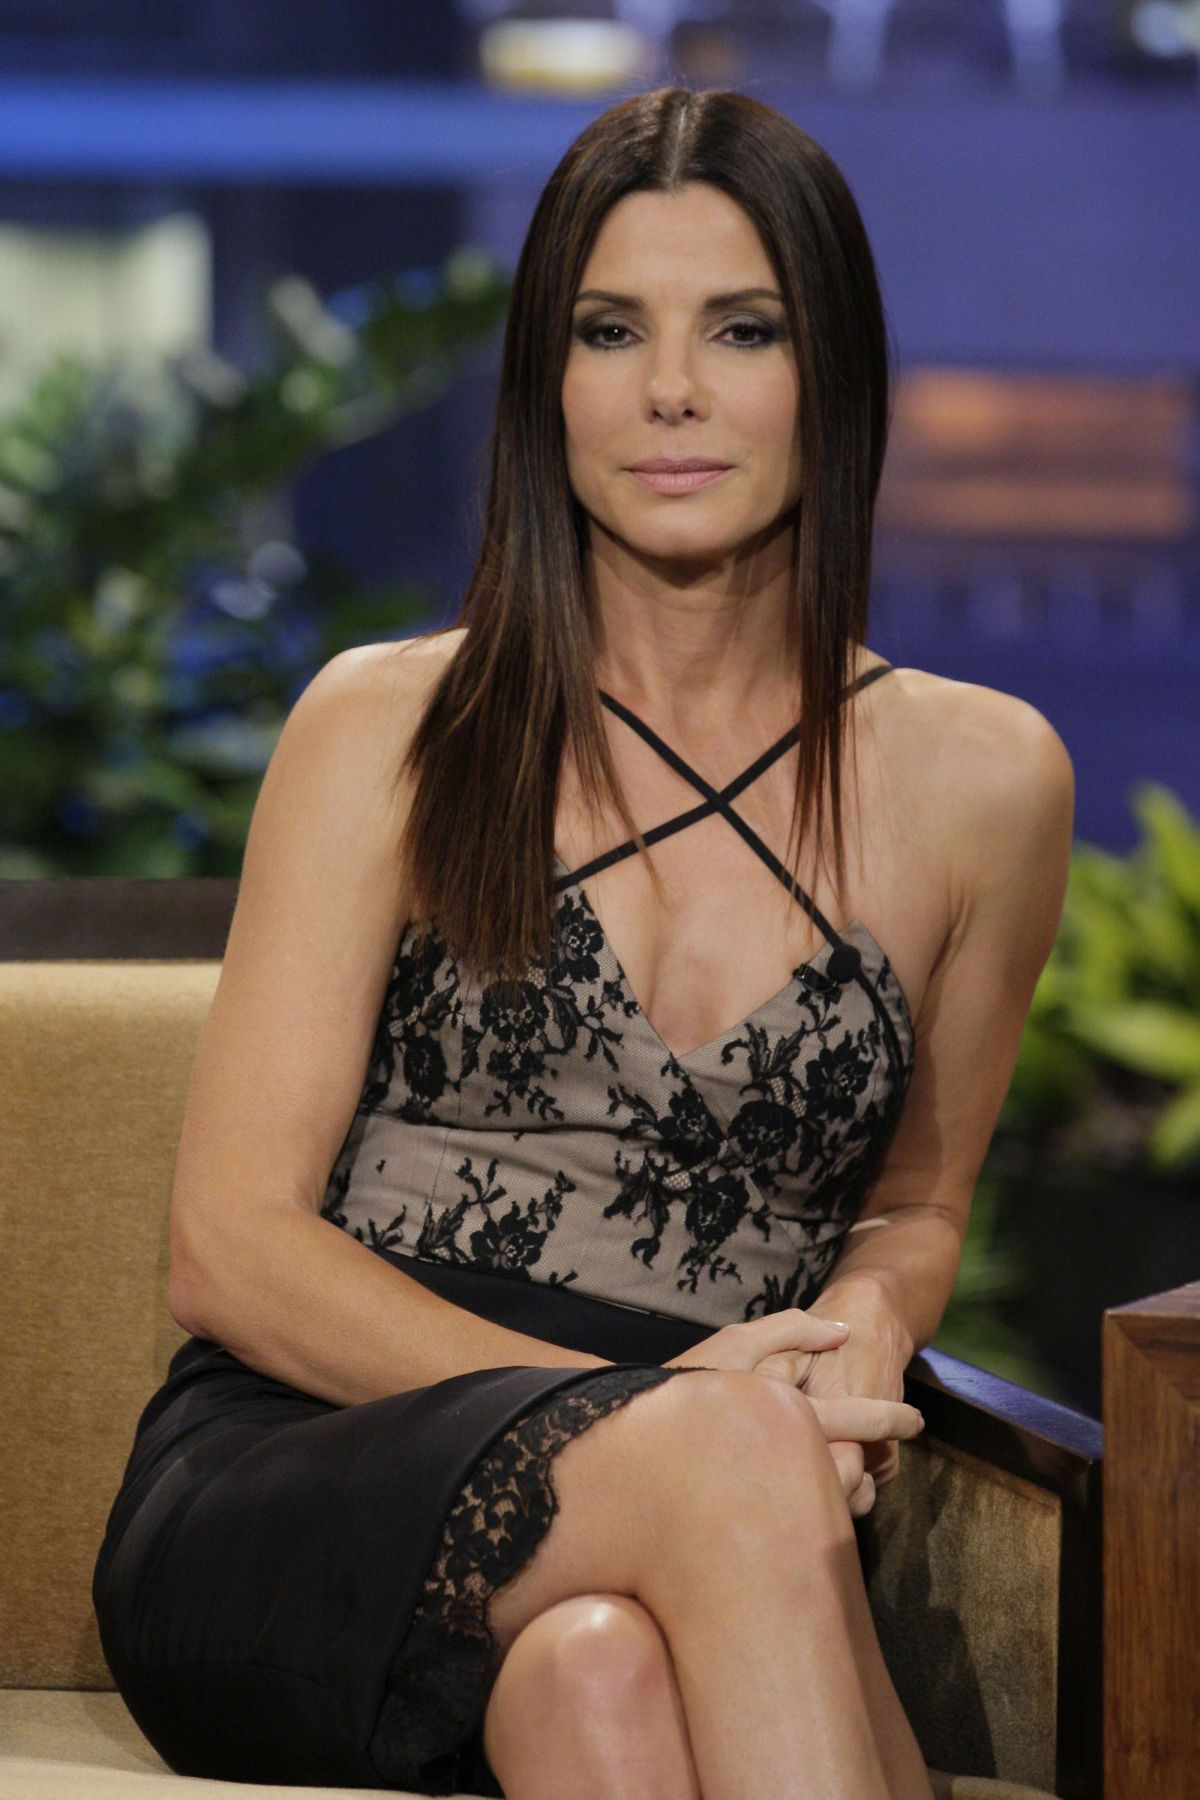 sandra bullock sexy look - photo #8